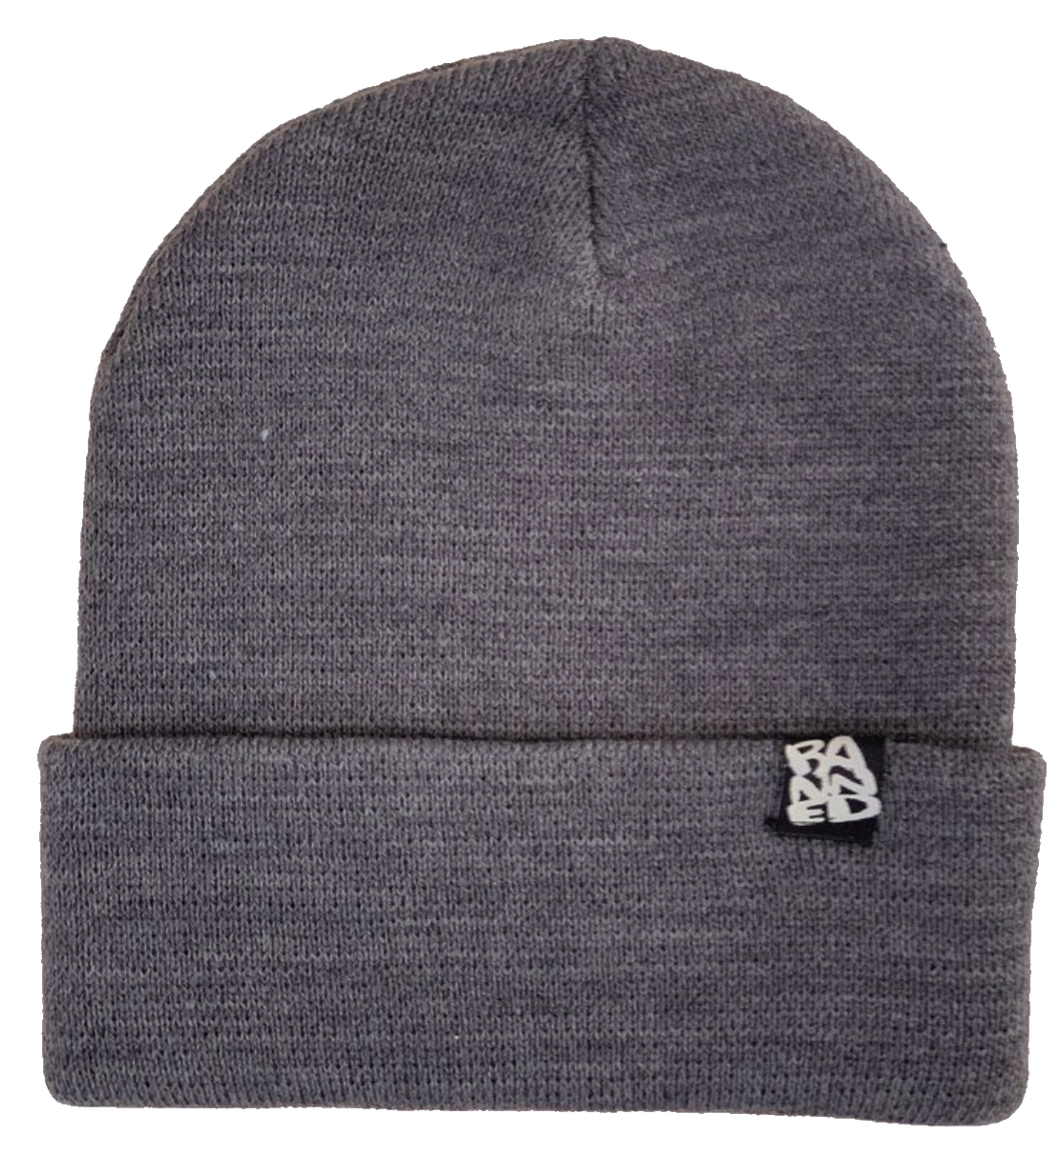 The Aquatic Beanie Charcoal Grey